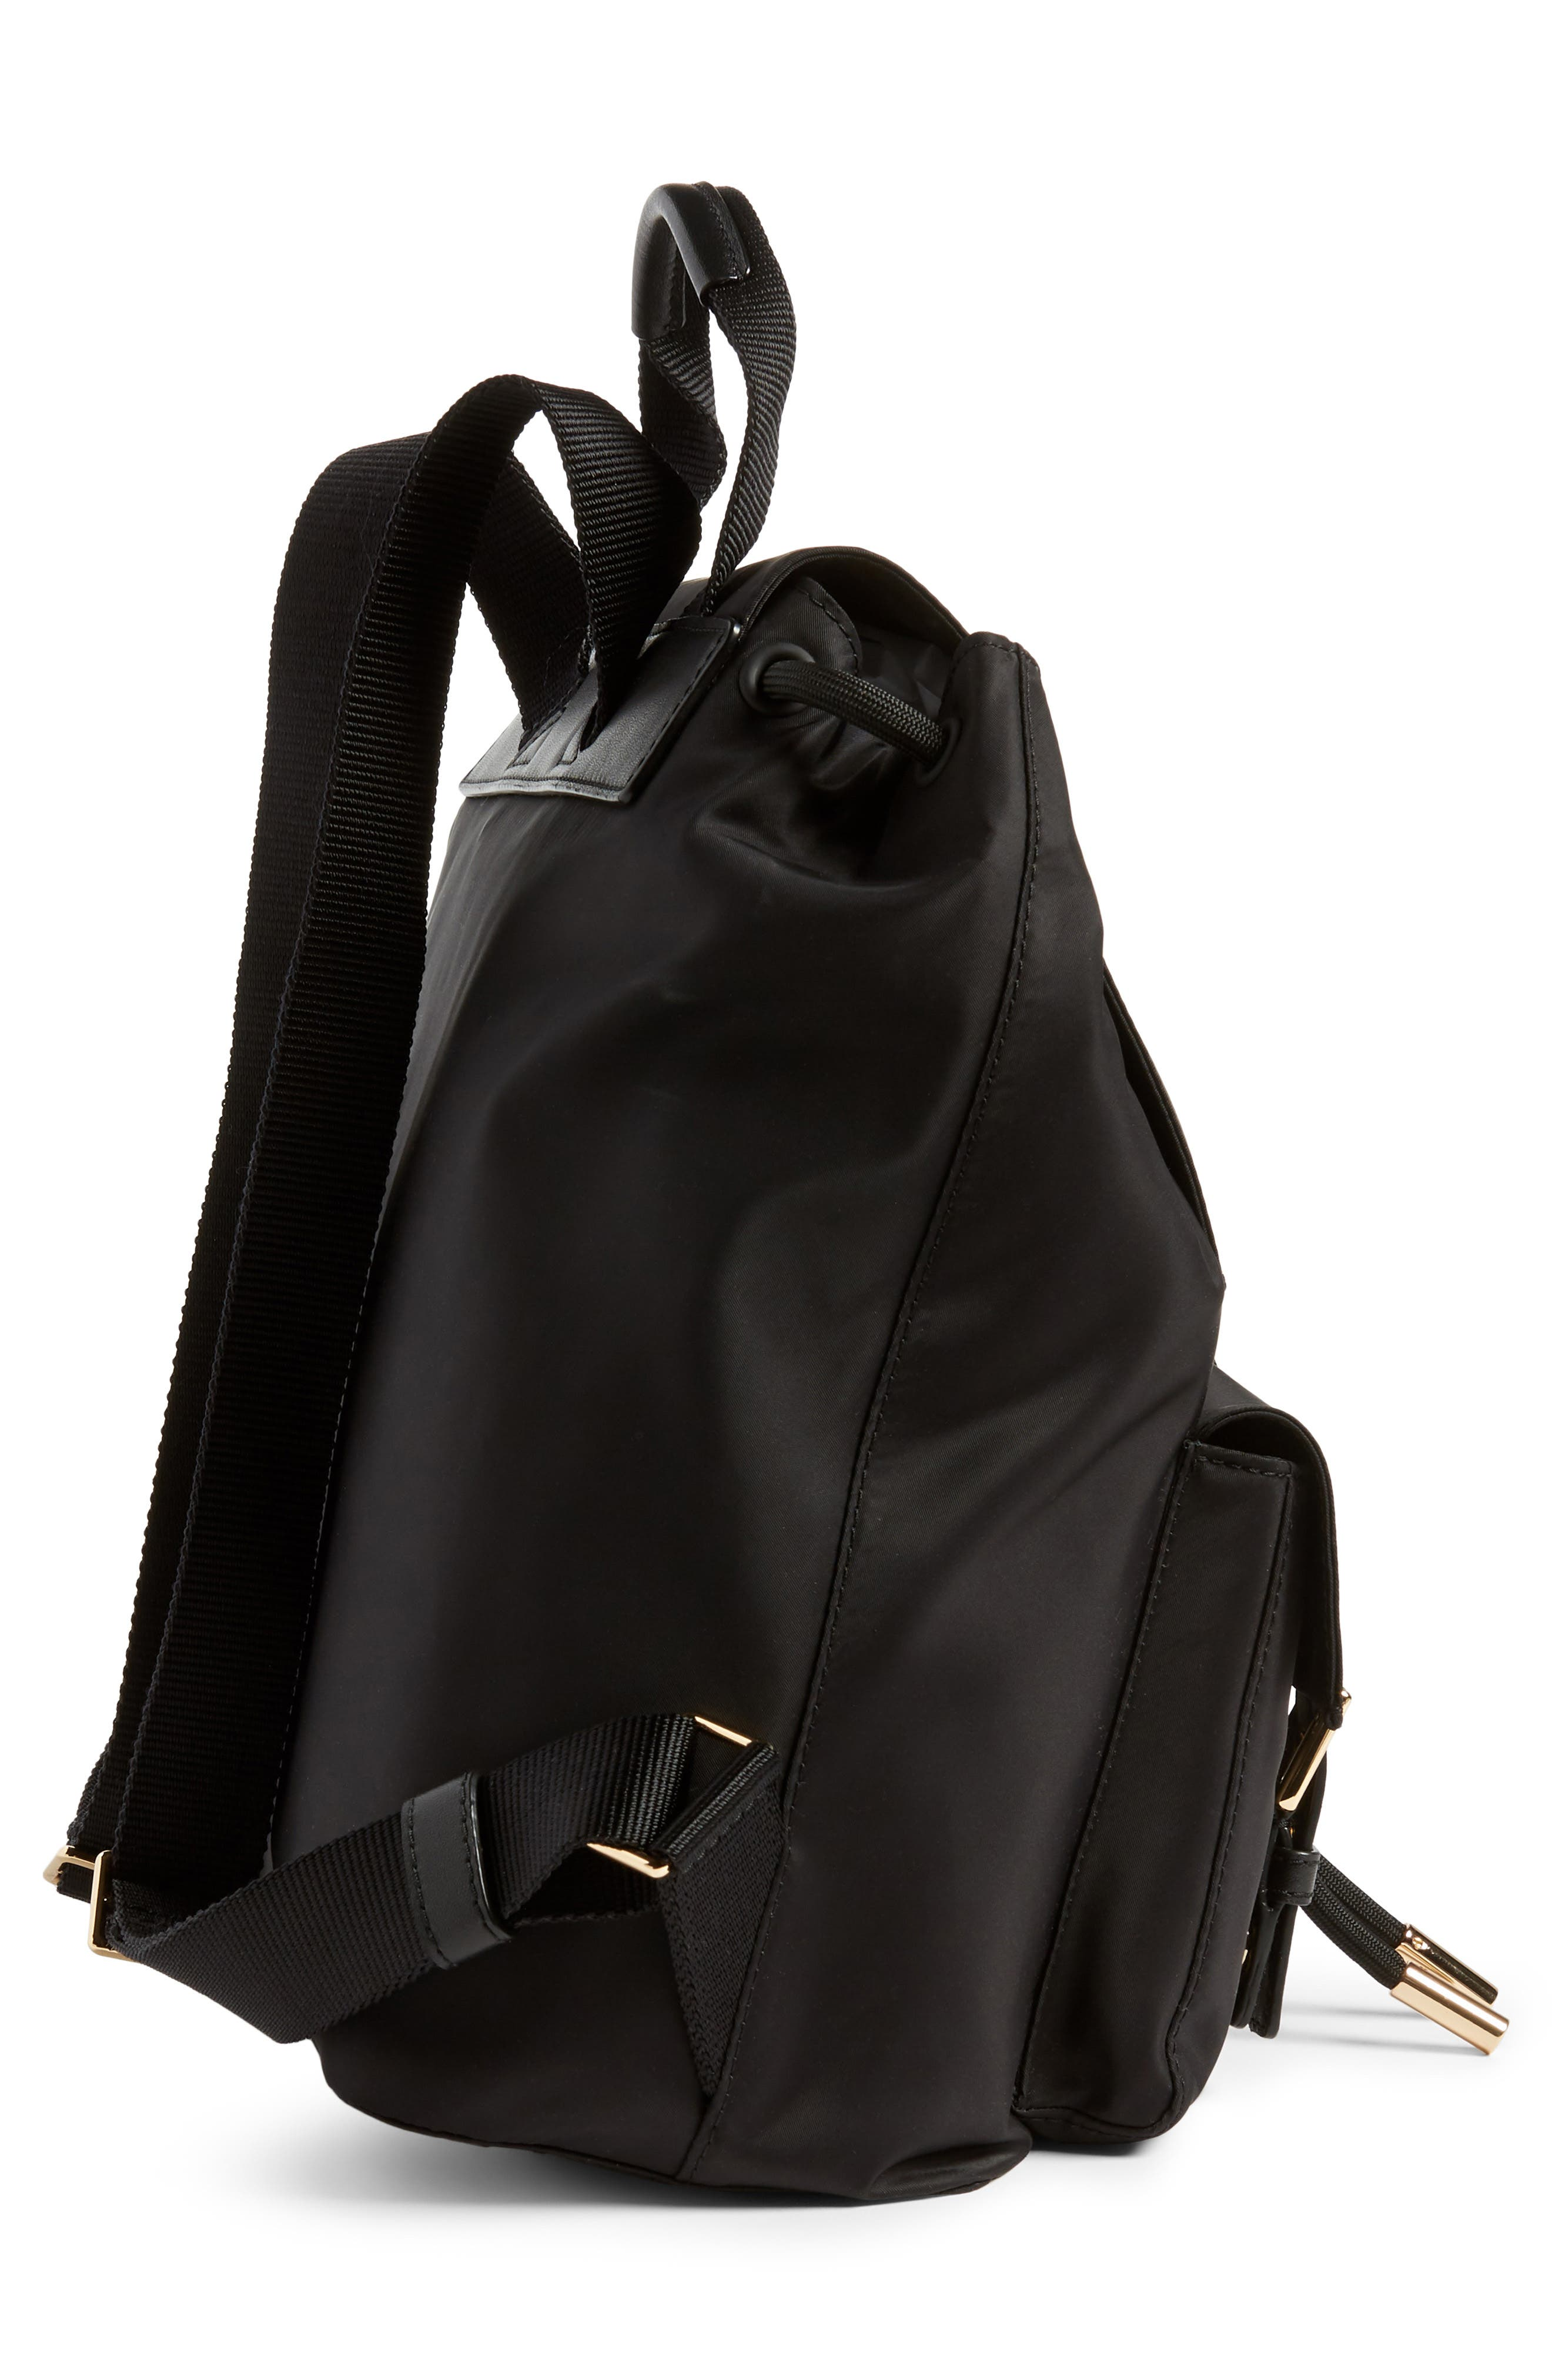 TORY BURCH, Tilda Nylon Backpack, Alternate thumbnail 6, color, BLACK